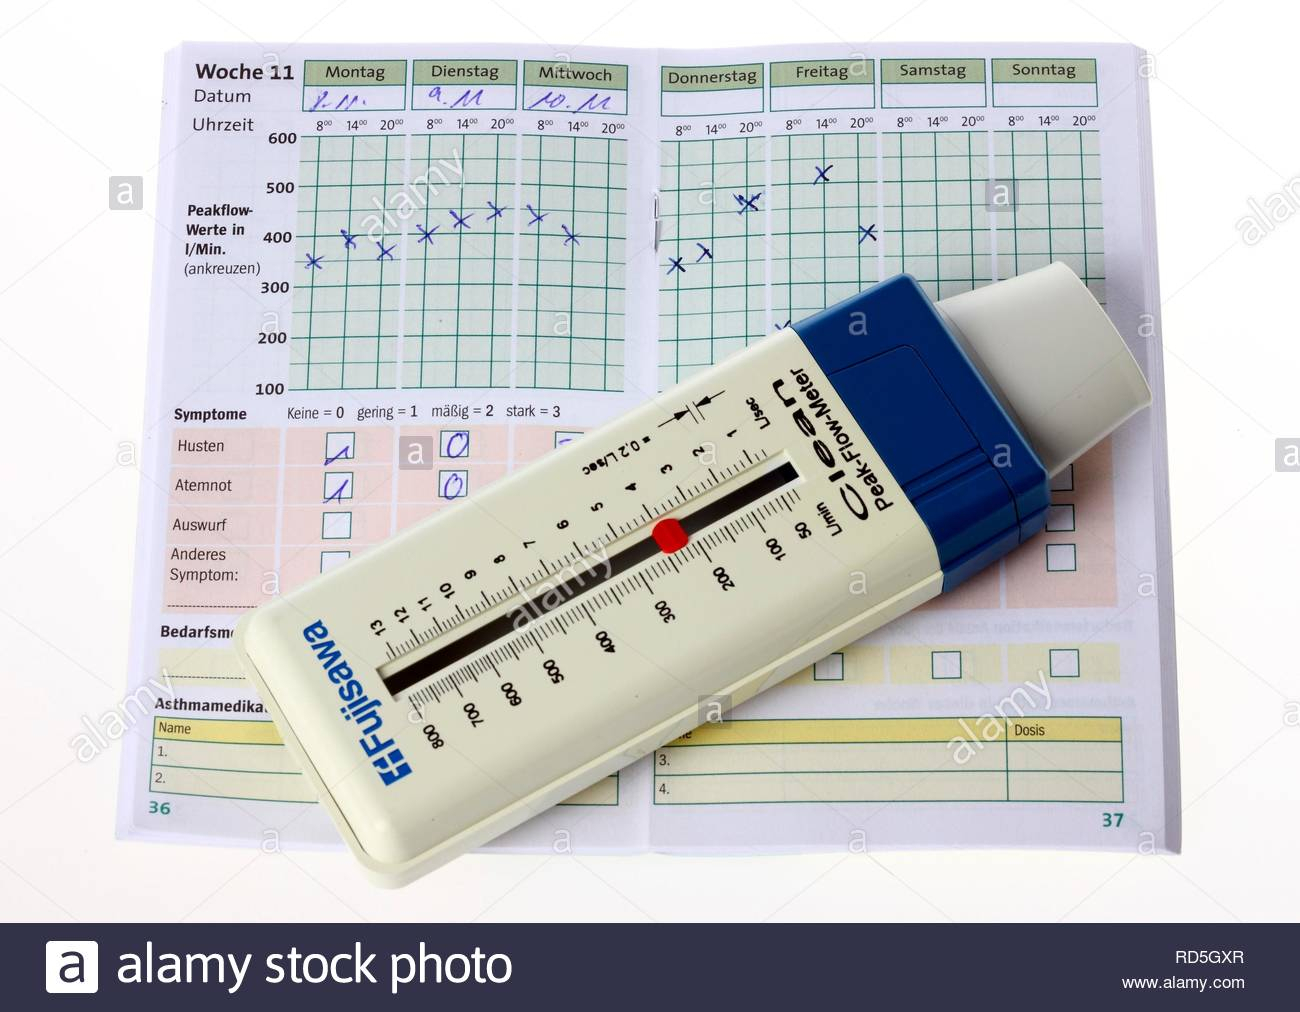 Peak Flow Meter Stock Photos & Peak Flow Meter Stock Images